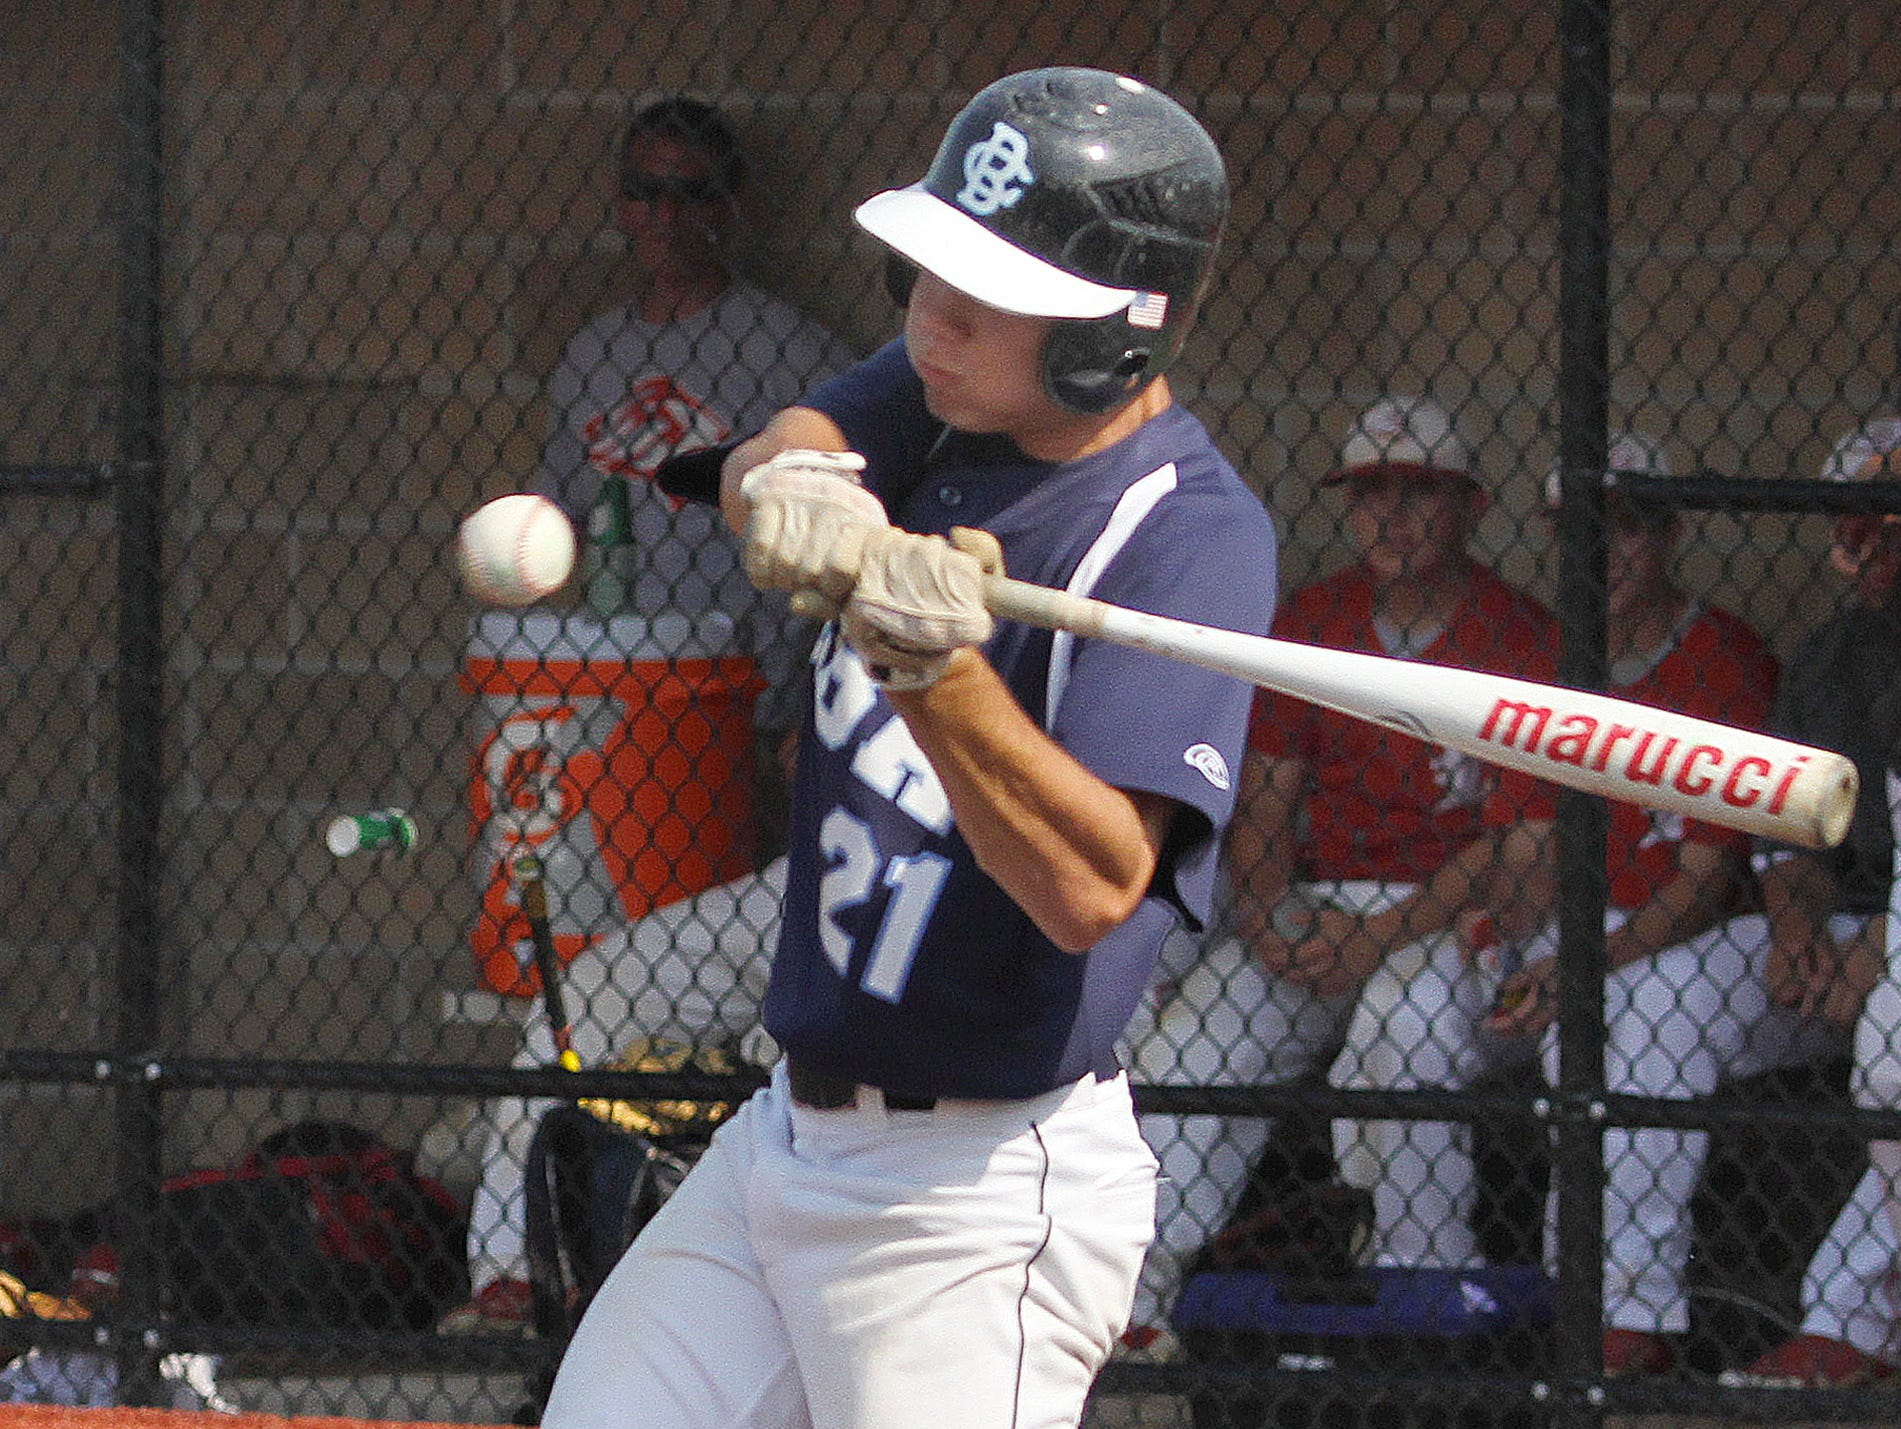 Will Morgan of CBA has committed to play at Old Dominion.